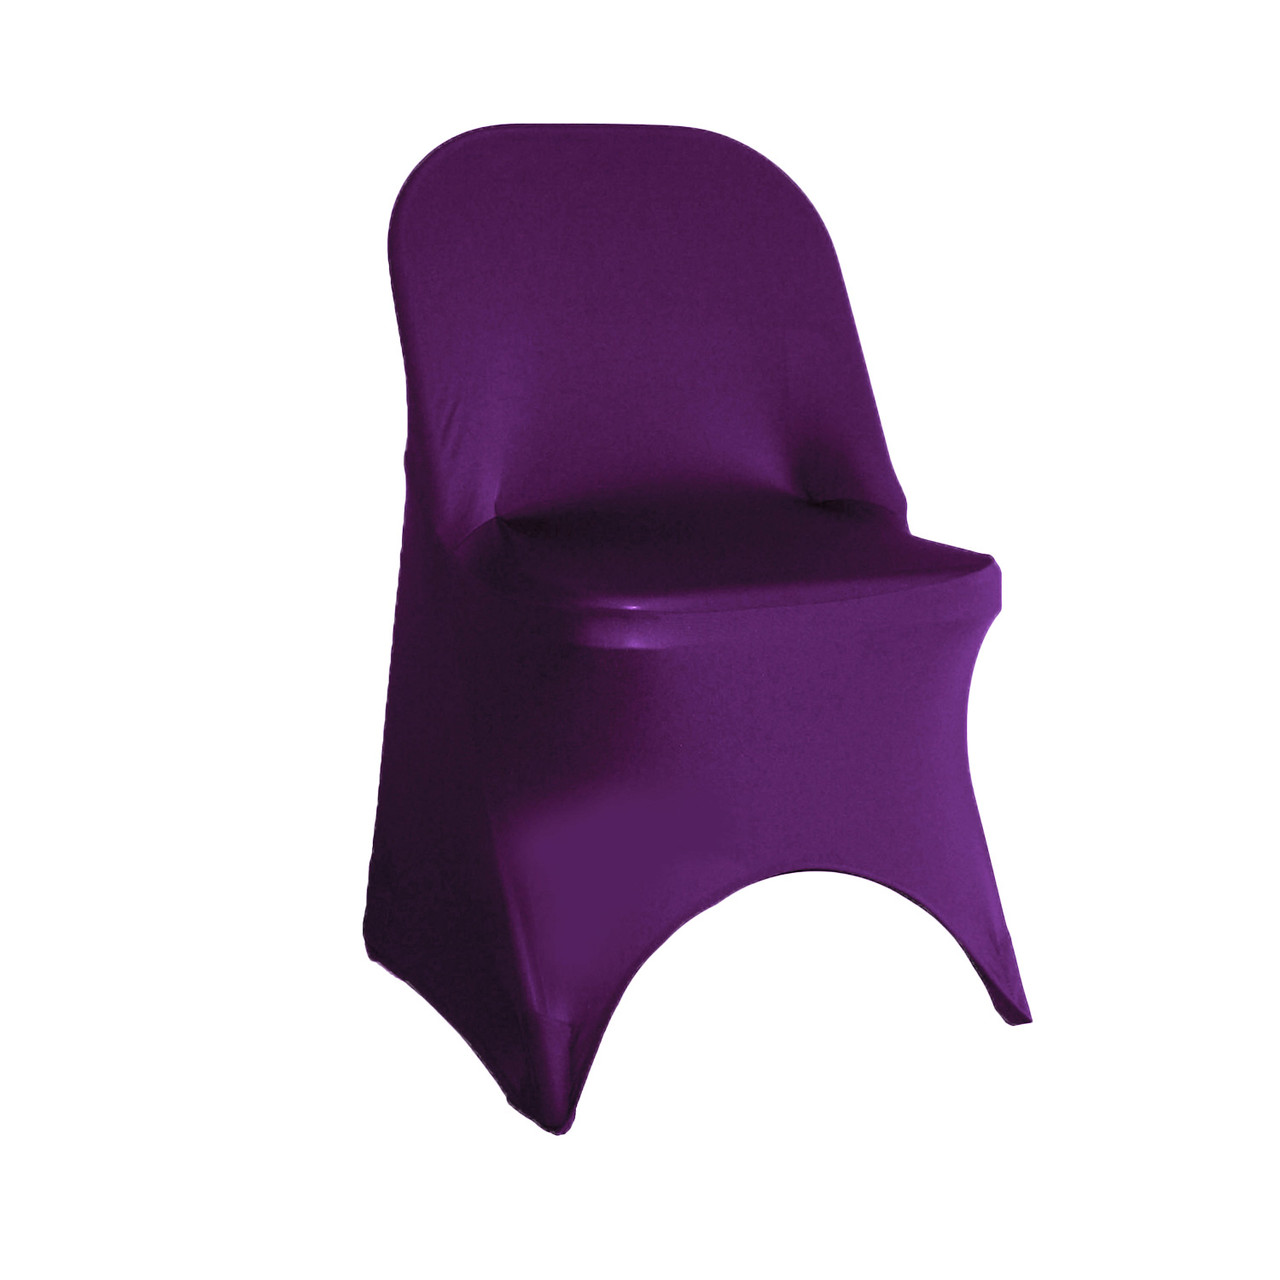 Swell Stretch Spandex Folding Chair Cover Eggplant Machost Co Dining Chair Design Ideas Machostcouk